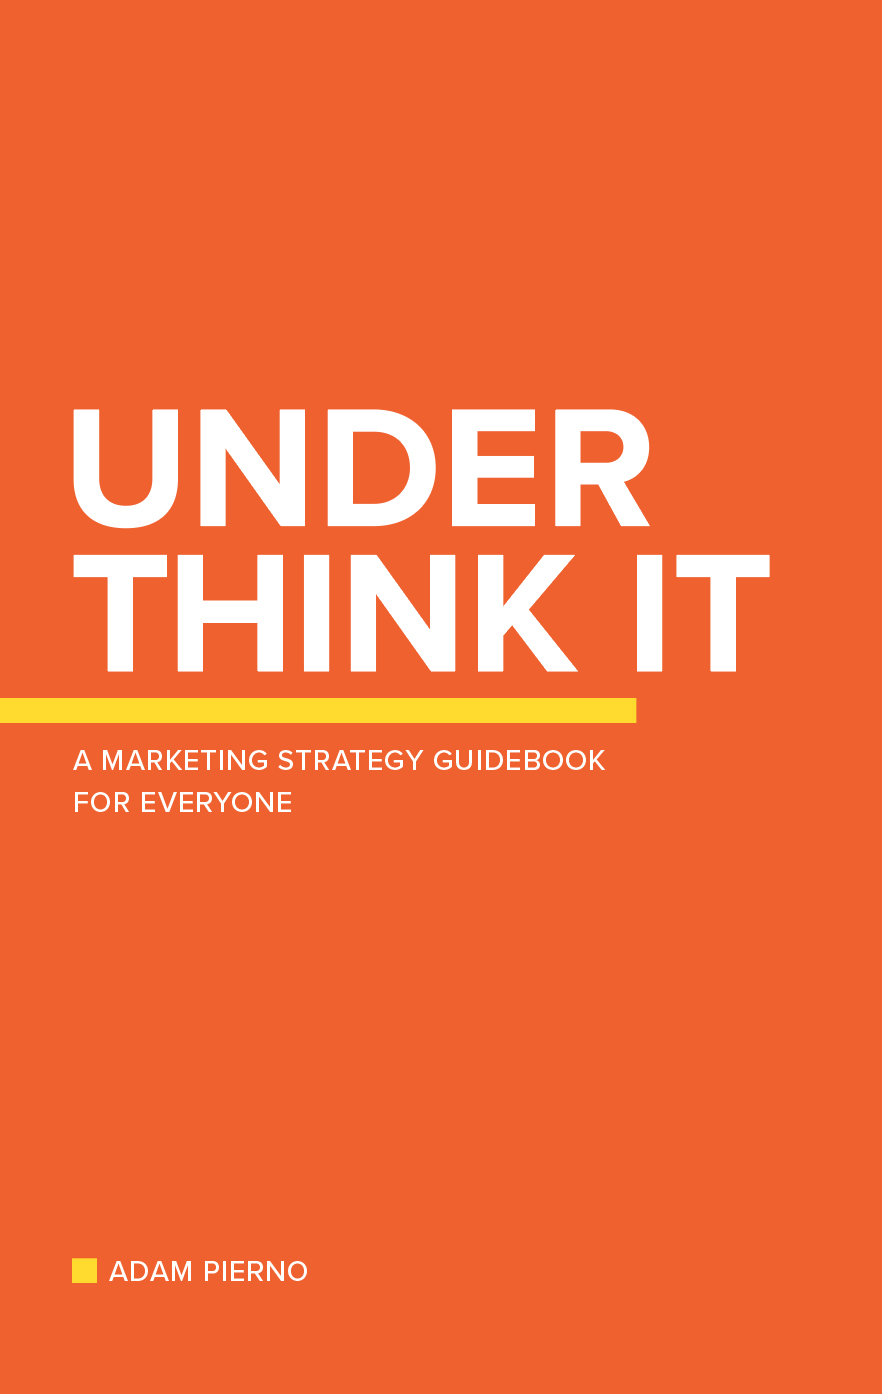 Under Think It  by Adam Pierno